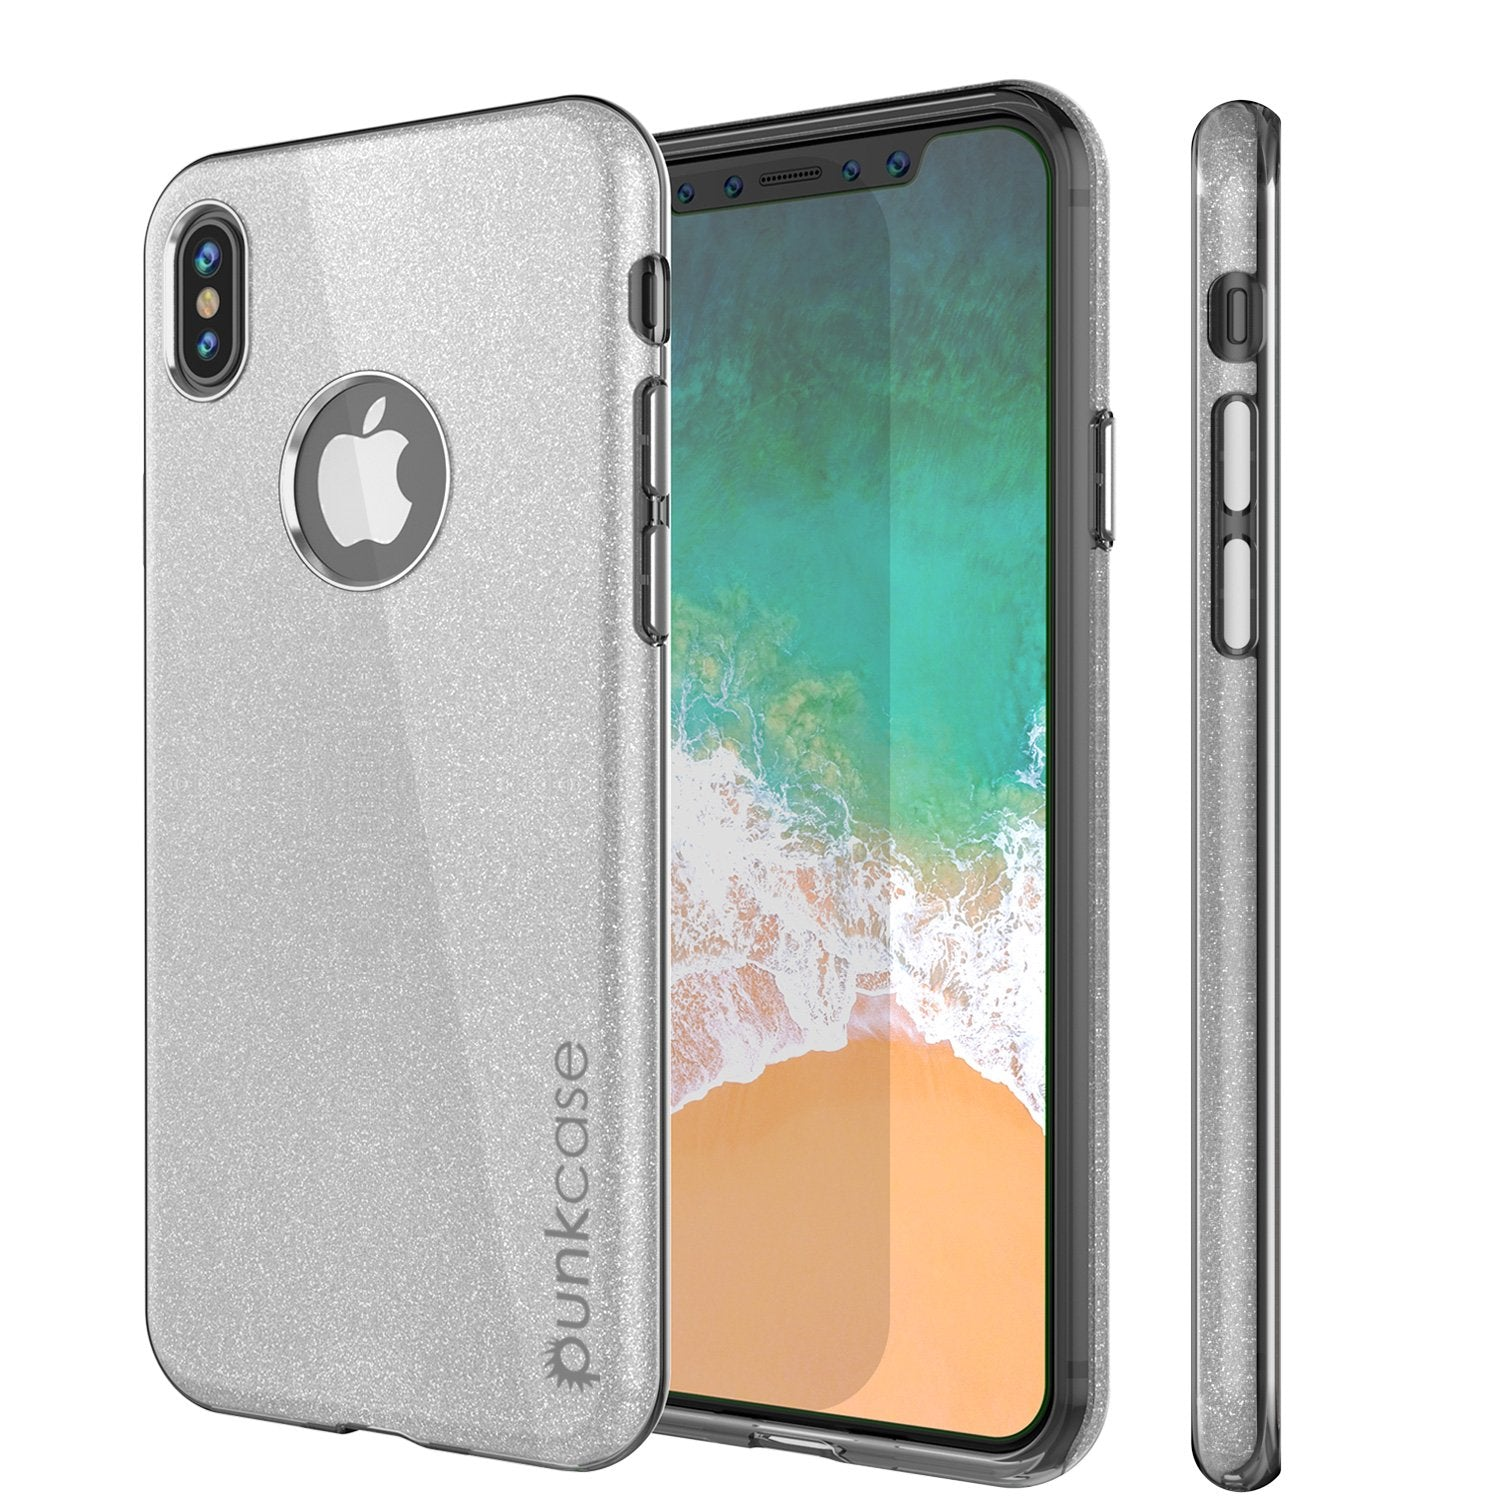 iPhone X Case, Punkcase Galactic 2.0 Series Ultra Slim w/ Tempered Glass Screen Protector | [Silver]